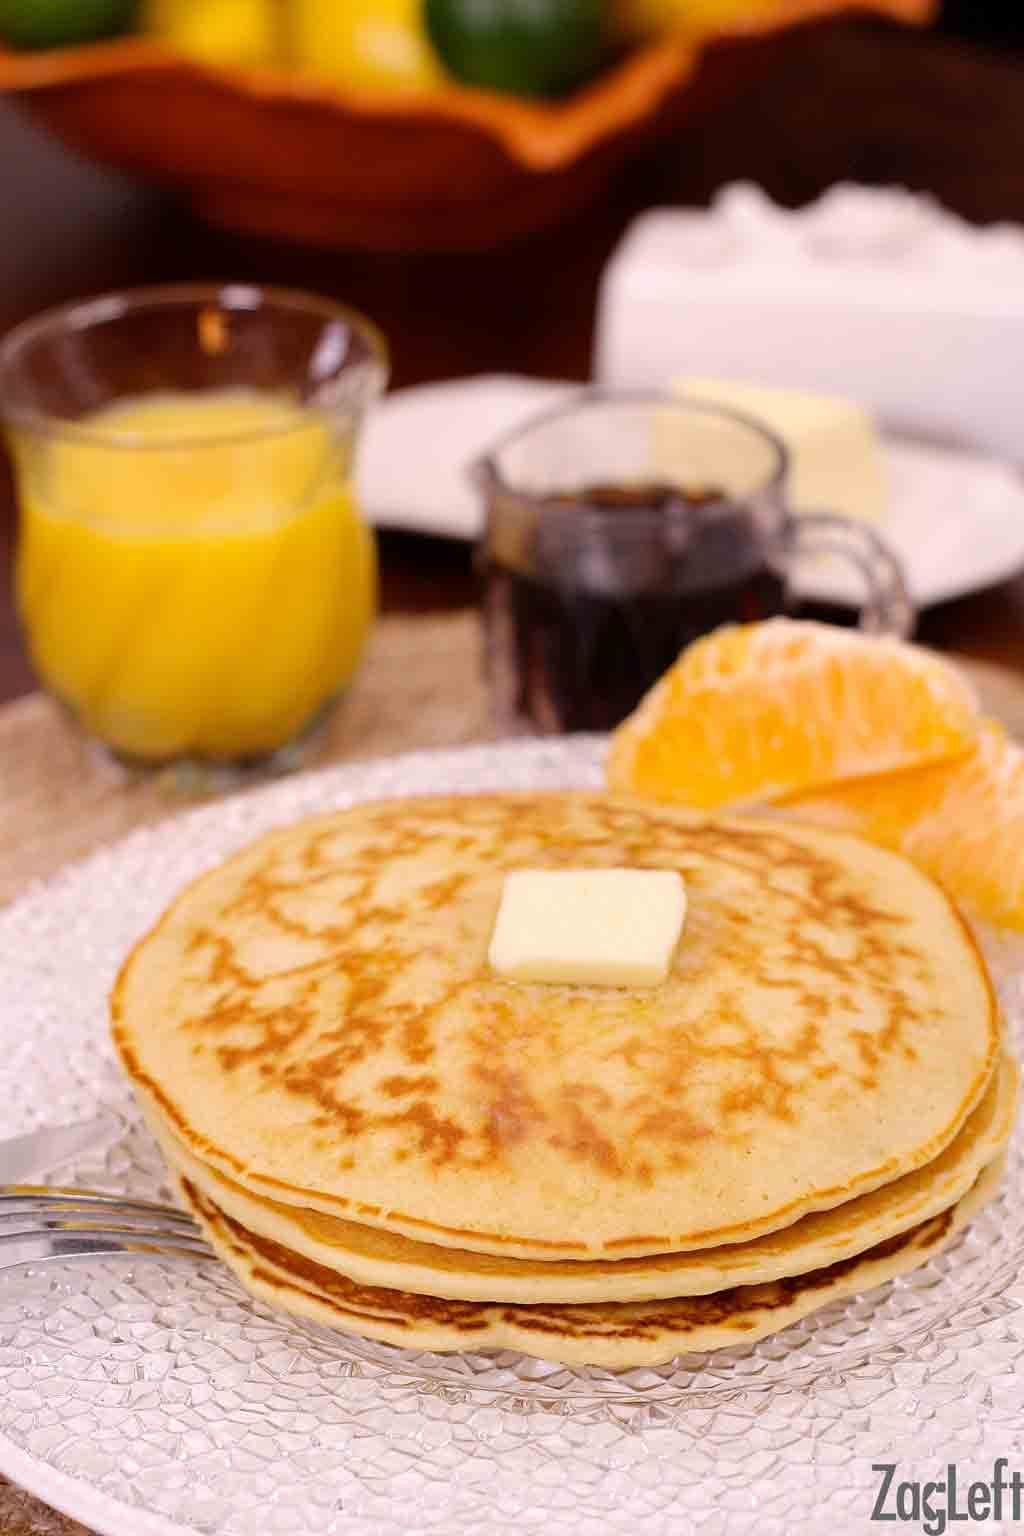 Light and fluffy pancakes for one this single serving recipe is a quarter of this recipe makes 3 very fluffy pancakes light and fluffy pancakes for one tris single serving recipe is perfect for making a small batch of ccuart Choice Image